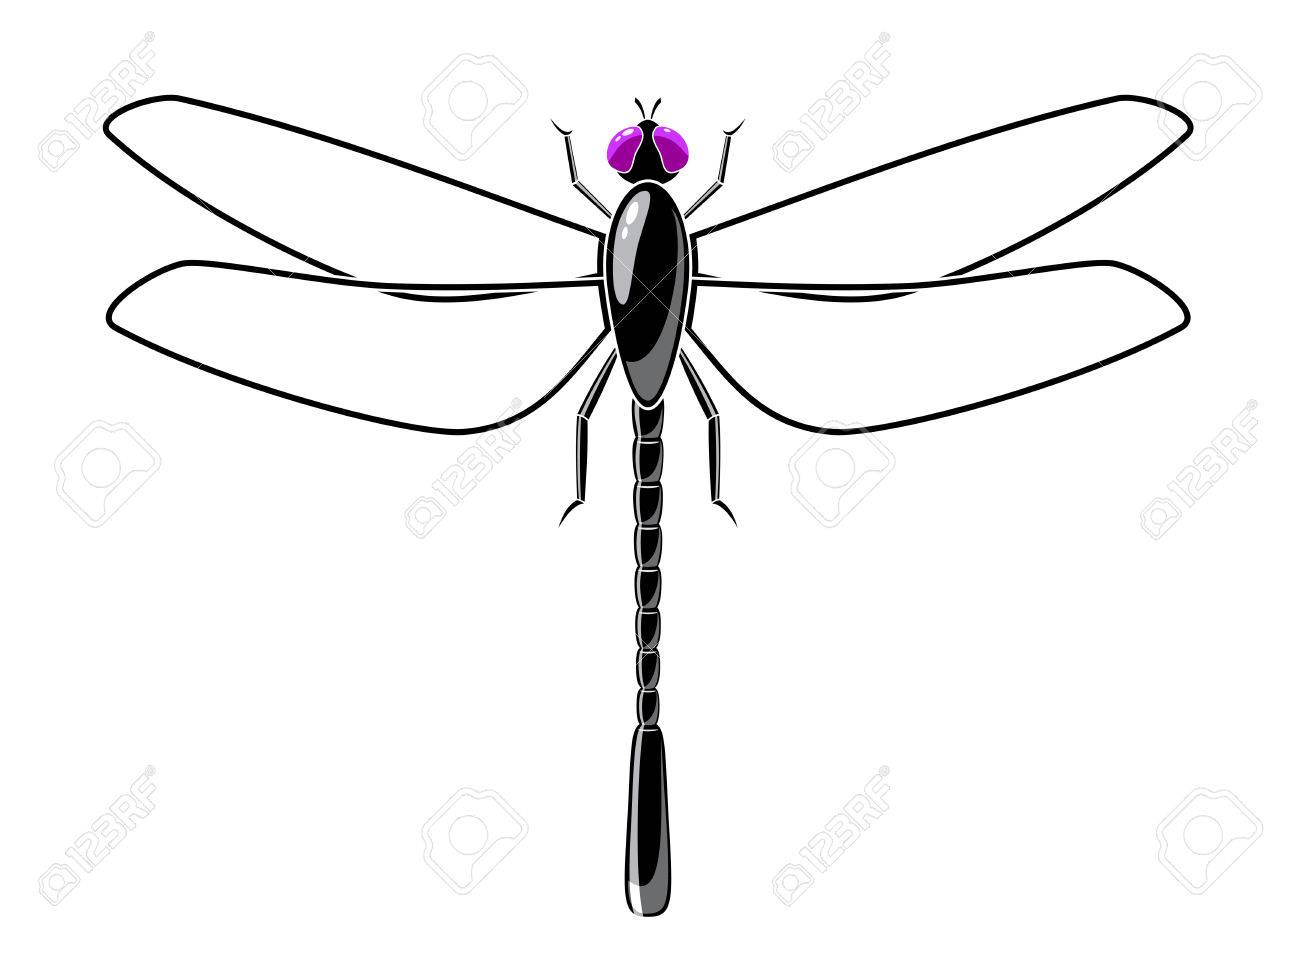 Symbol of a dragonfly is on a white background royalty free symbol of a dragonfly is on a white background stock vector 34401120 biocorpaavc